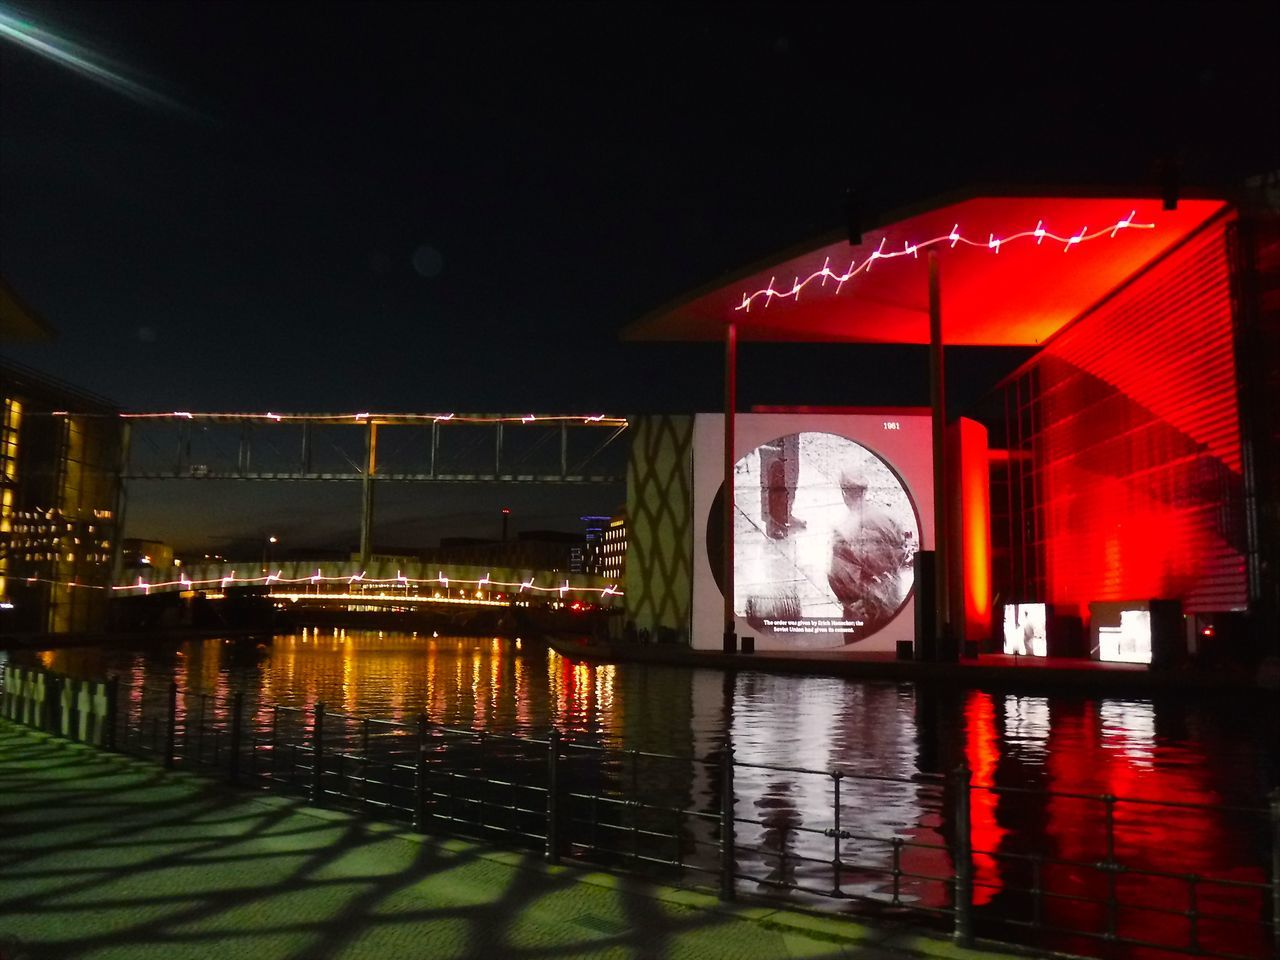 night, illuminated, reflection, water, river, red, no people, built structure, outdoors, architecture, nature, sky